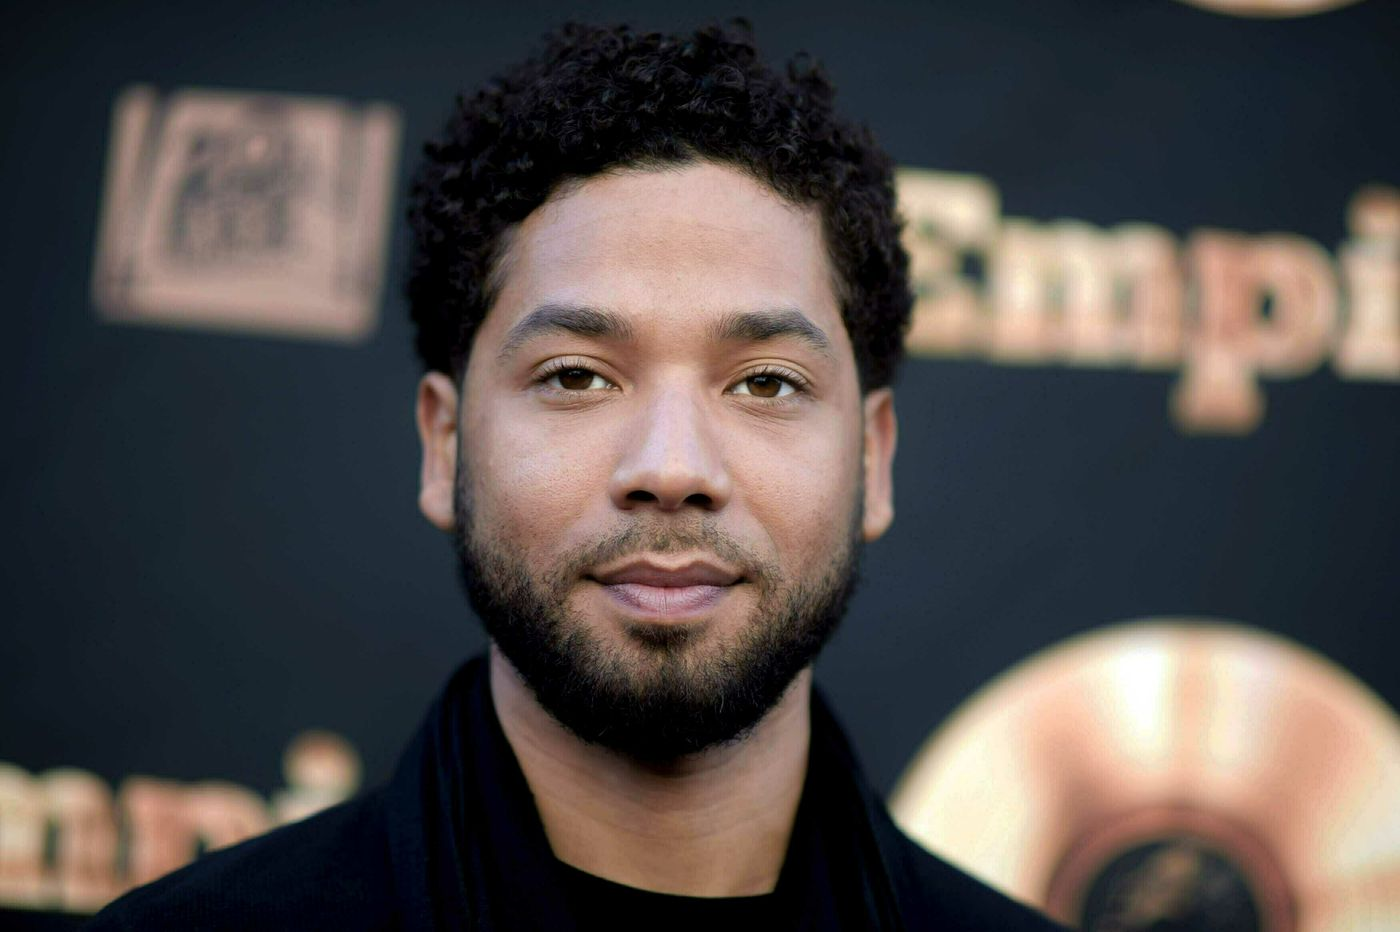 Jussie Smollett arrested following hate crime hoax allegations